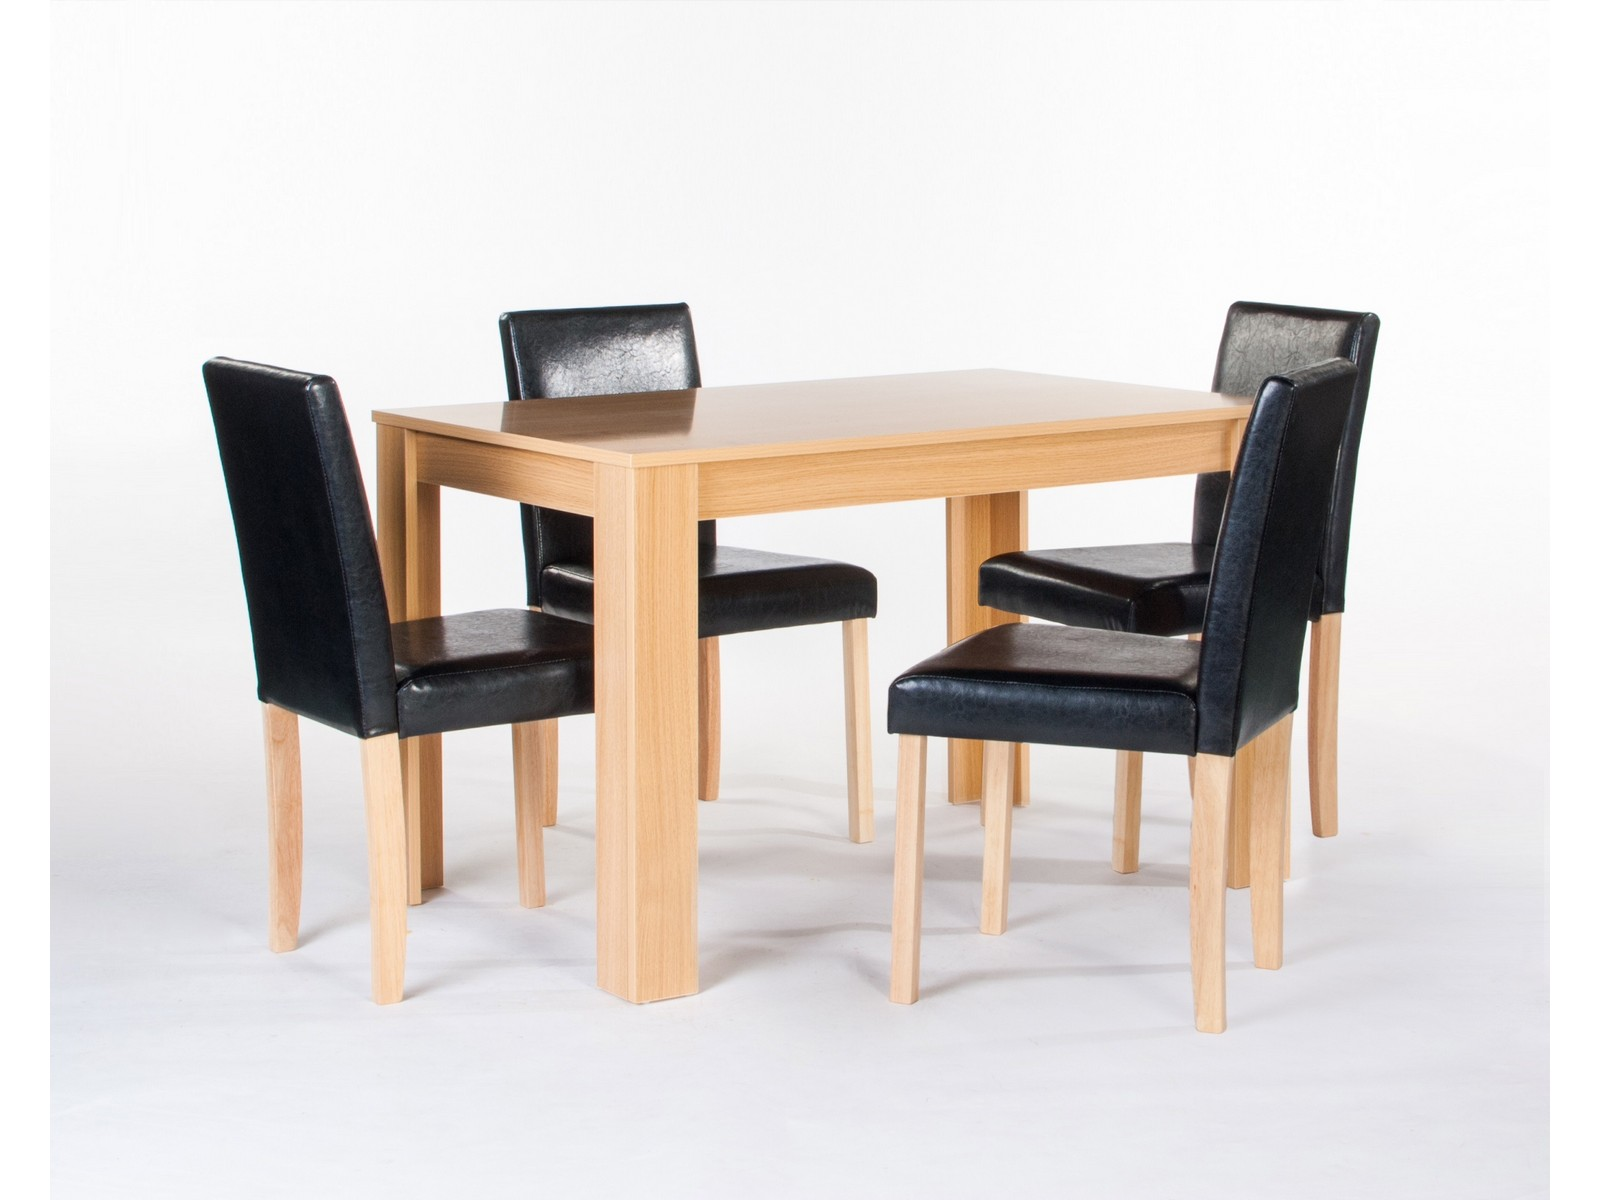 Cambridge Oak Dining Table With 4 Black Faux Leather Chairs EBay